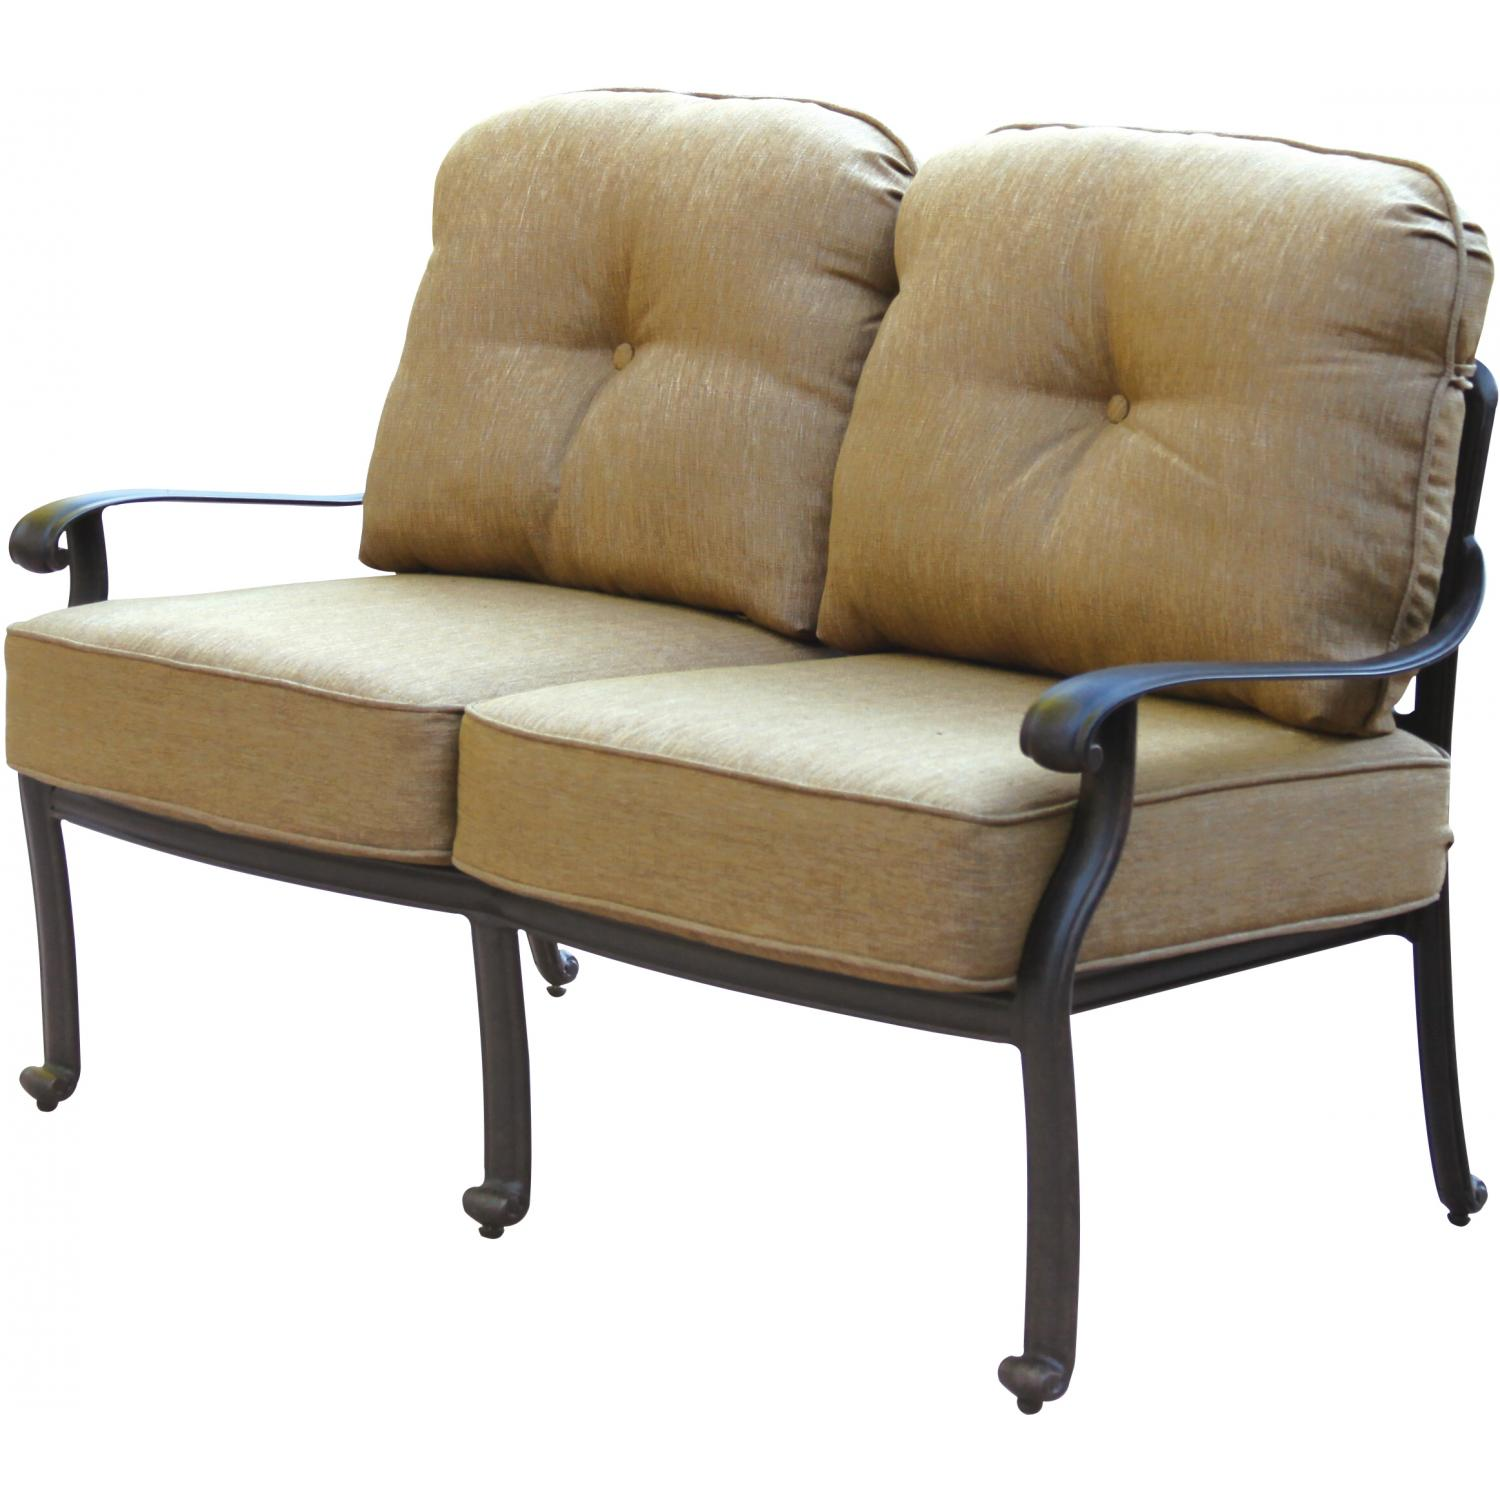 Patio Furniture Loveseat Cushions: Patio Furniture Deep Seating Loveseat Cast Aluminum Lisse